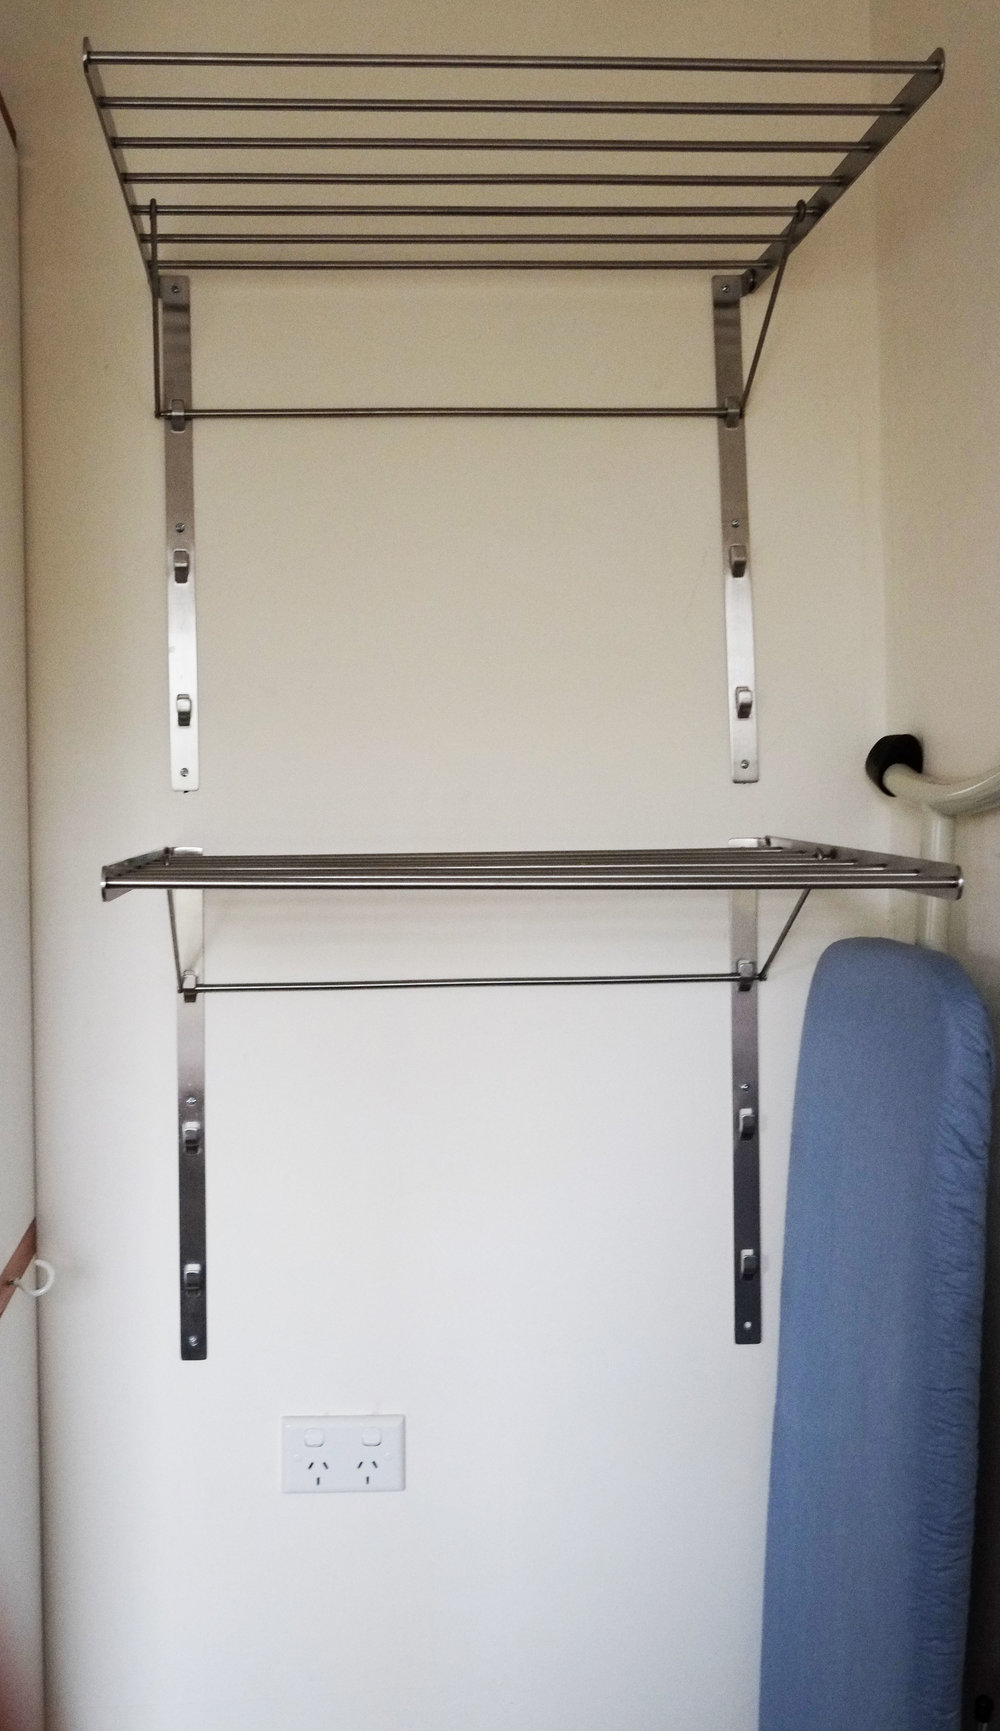 Attach drying racks directly to the wall to save on floor space and make hanging out clothes a breeze!